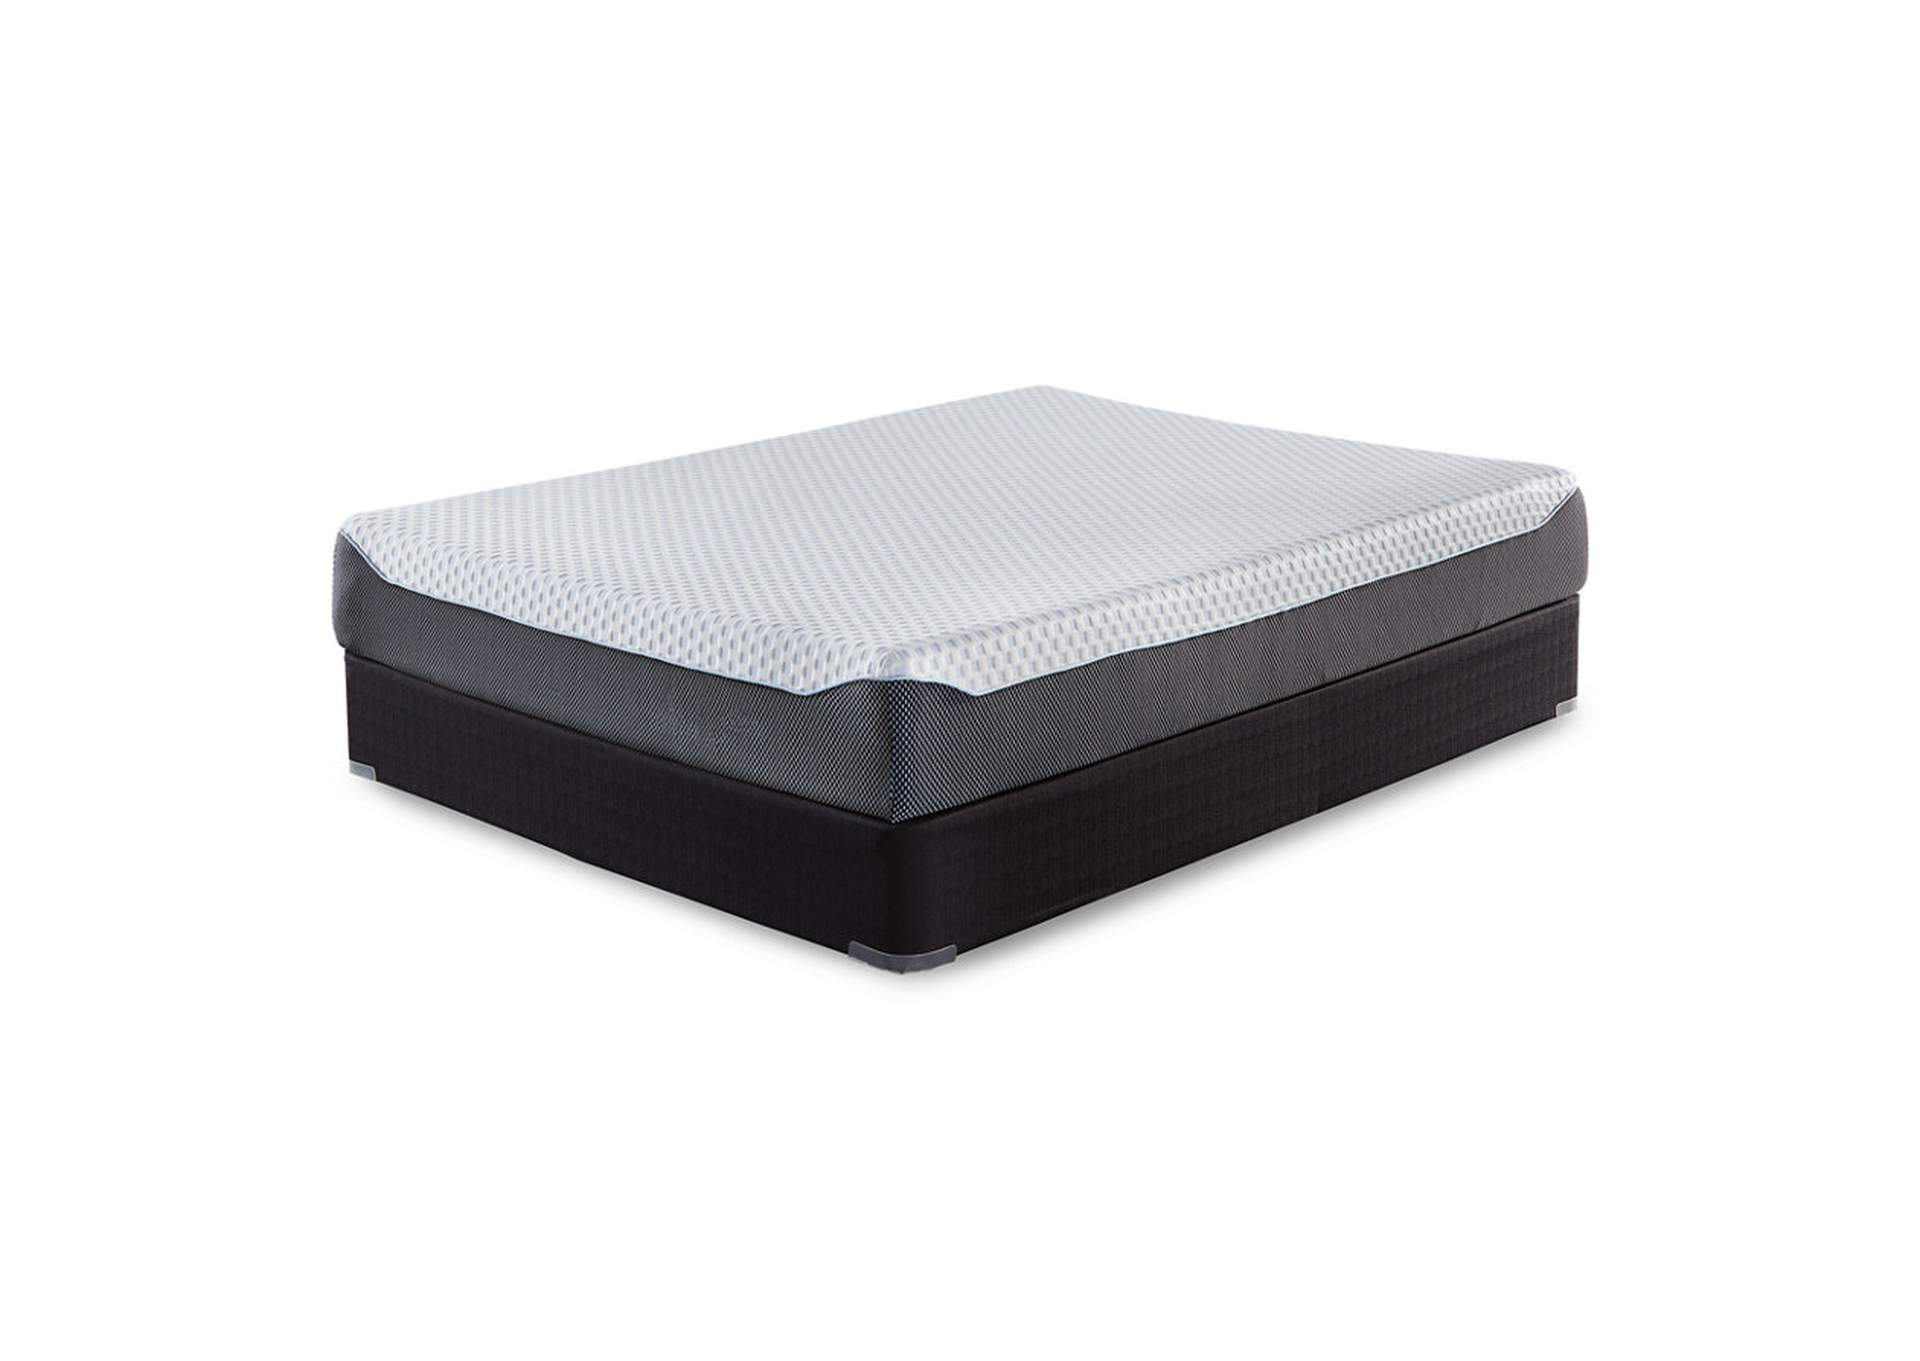 10 Inch Chime Elite King Memory Foam Mattress in a box w/Foundation,Sierra Sleep by Ashley